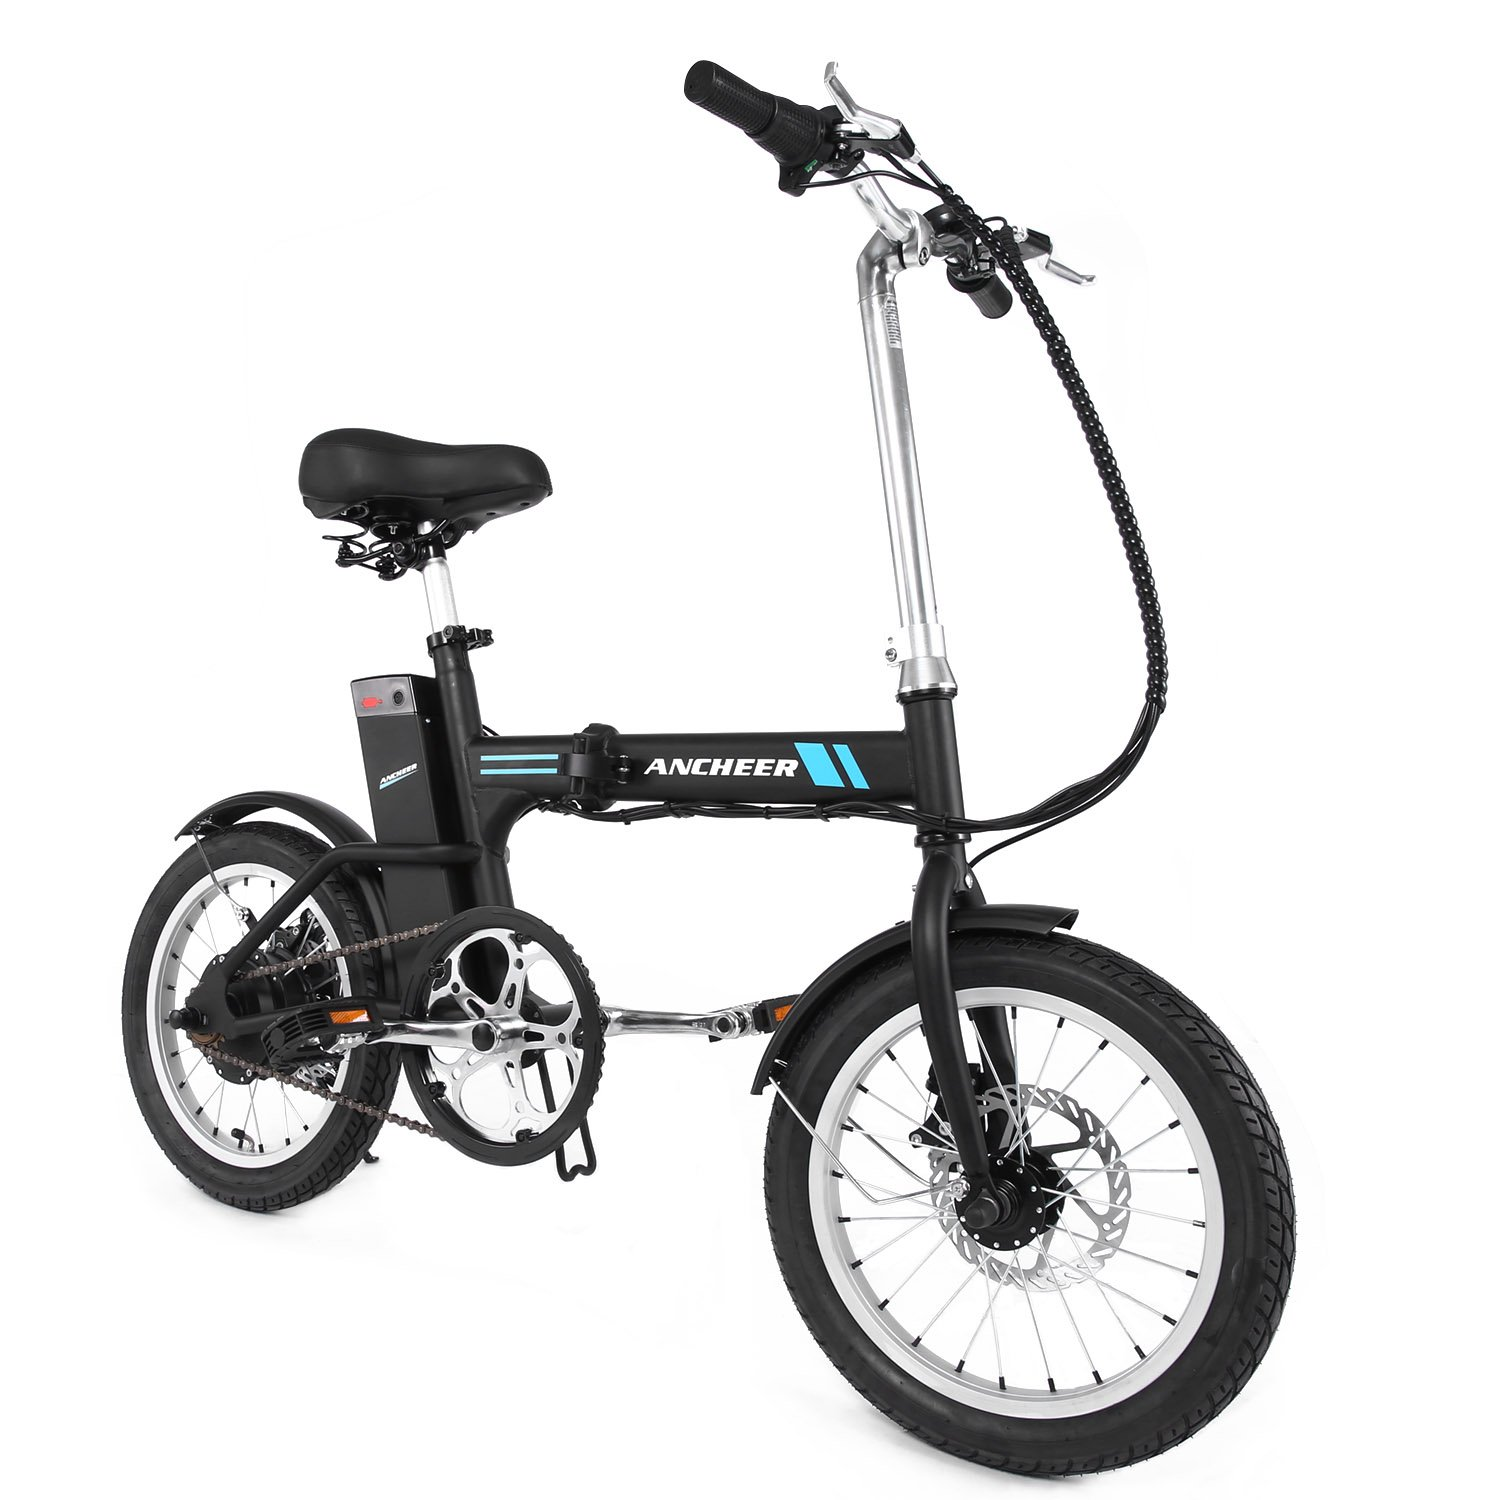 ANCHEER 16'' Electric Bike with 36V 2Ah Lithium-Ion Battery(Folding- Black)